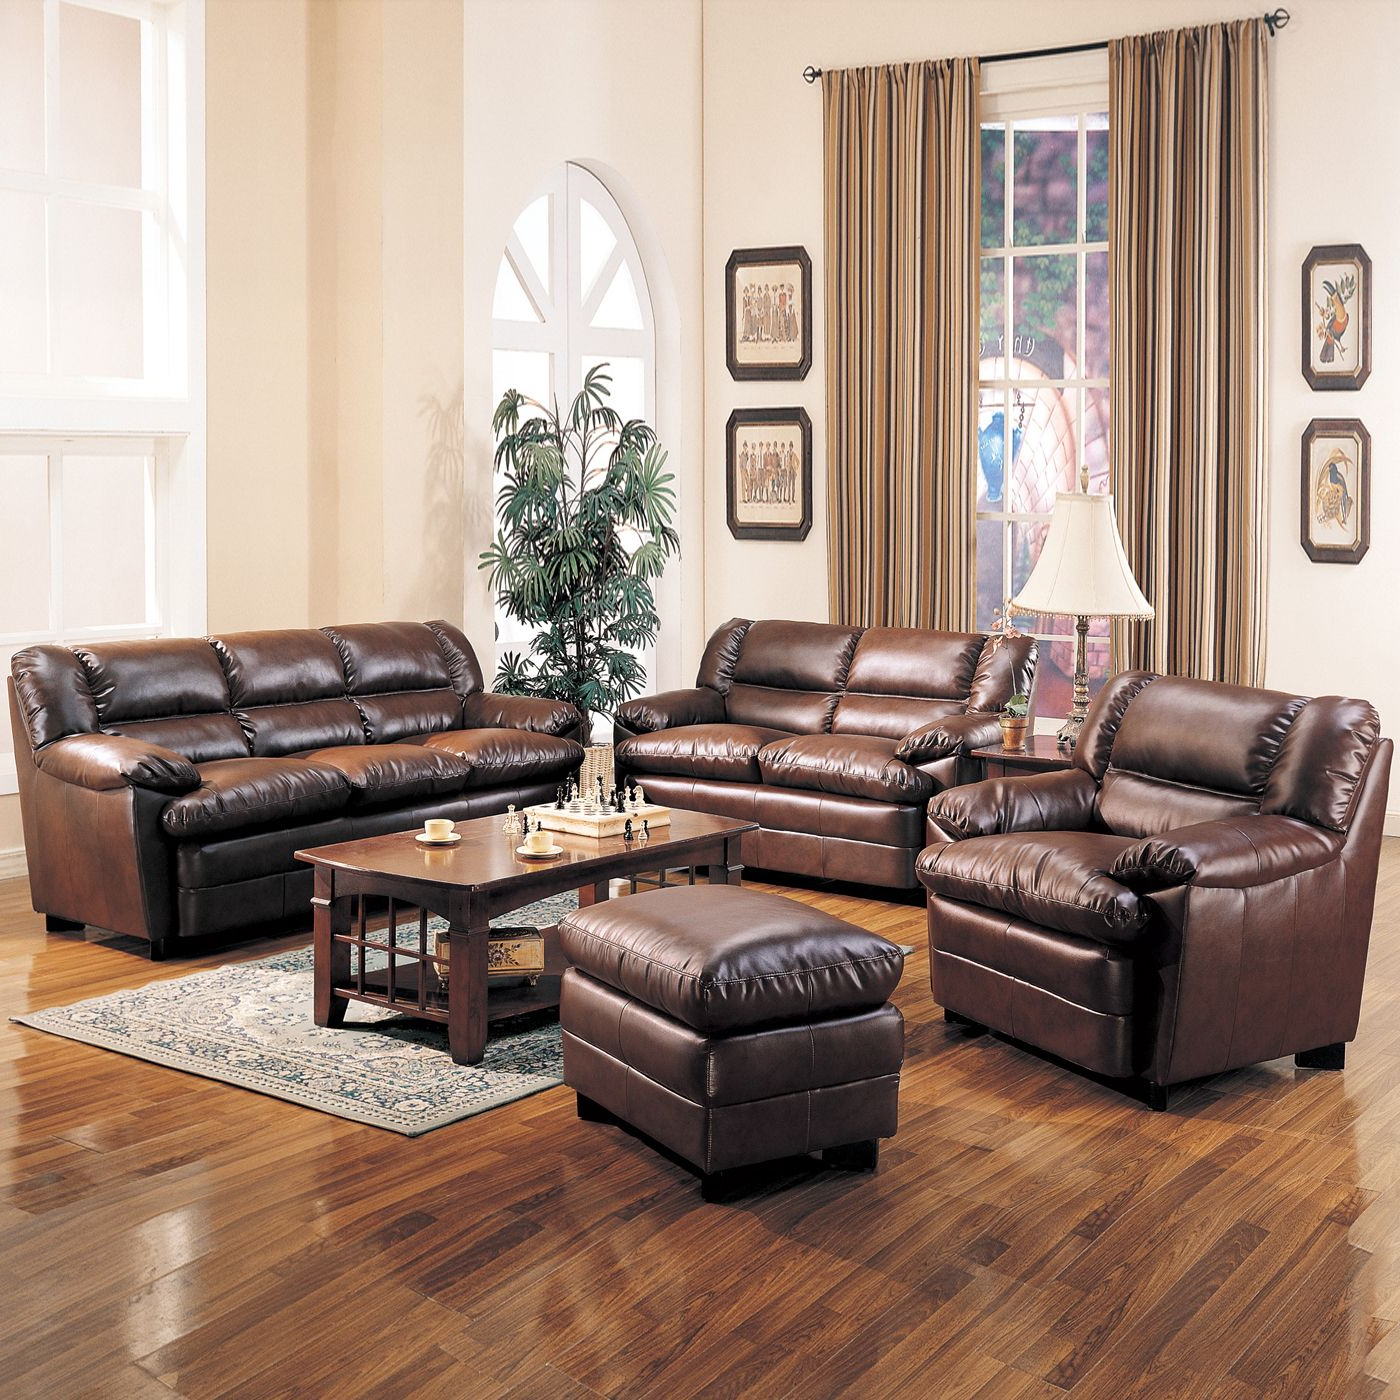 Most Up To Date Cream Living Room Sets: Vintage Living Room Set Up With Dark Brown Pertaining To Declan 3 Piece Power Reclining Sectionals With Right Facing Console Loveseat (View 17 of 20)